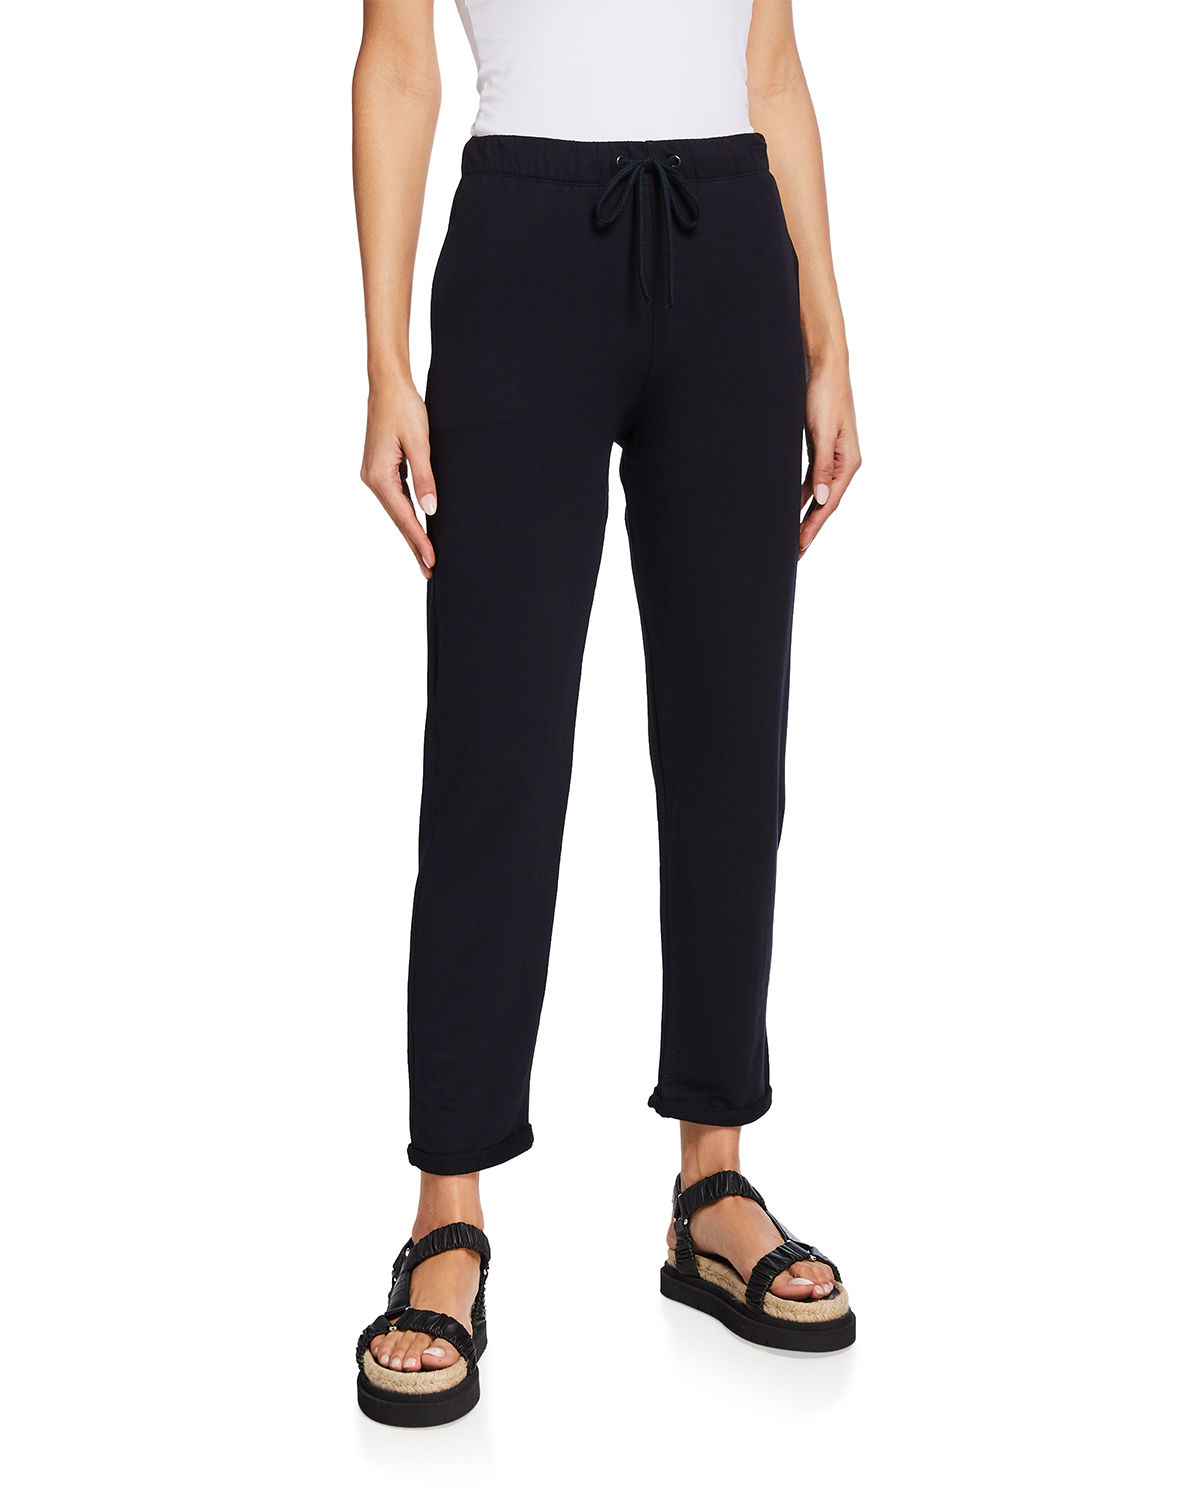 Majestic FRENCH TERRY CUFFED DRAWSTRING PANTS